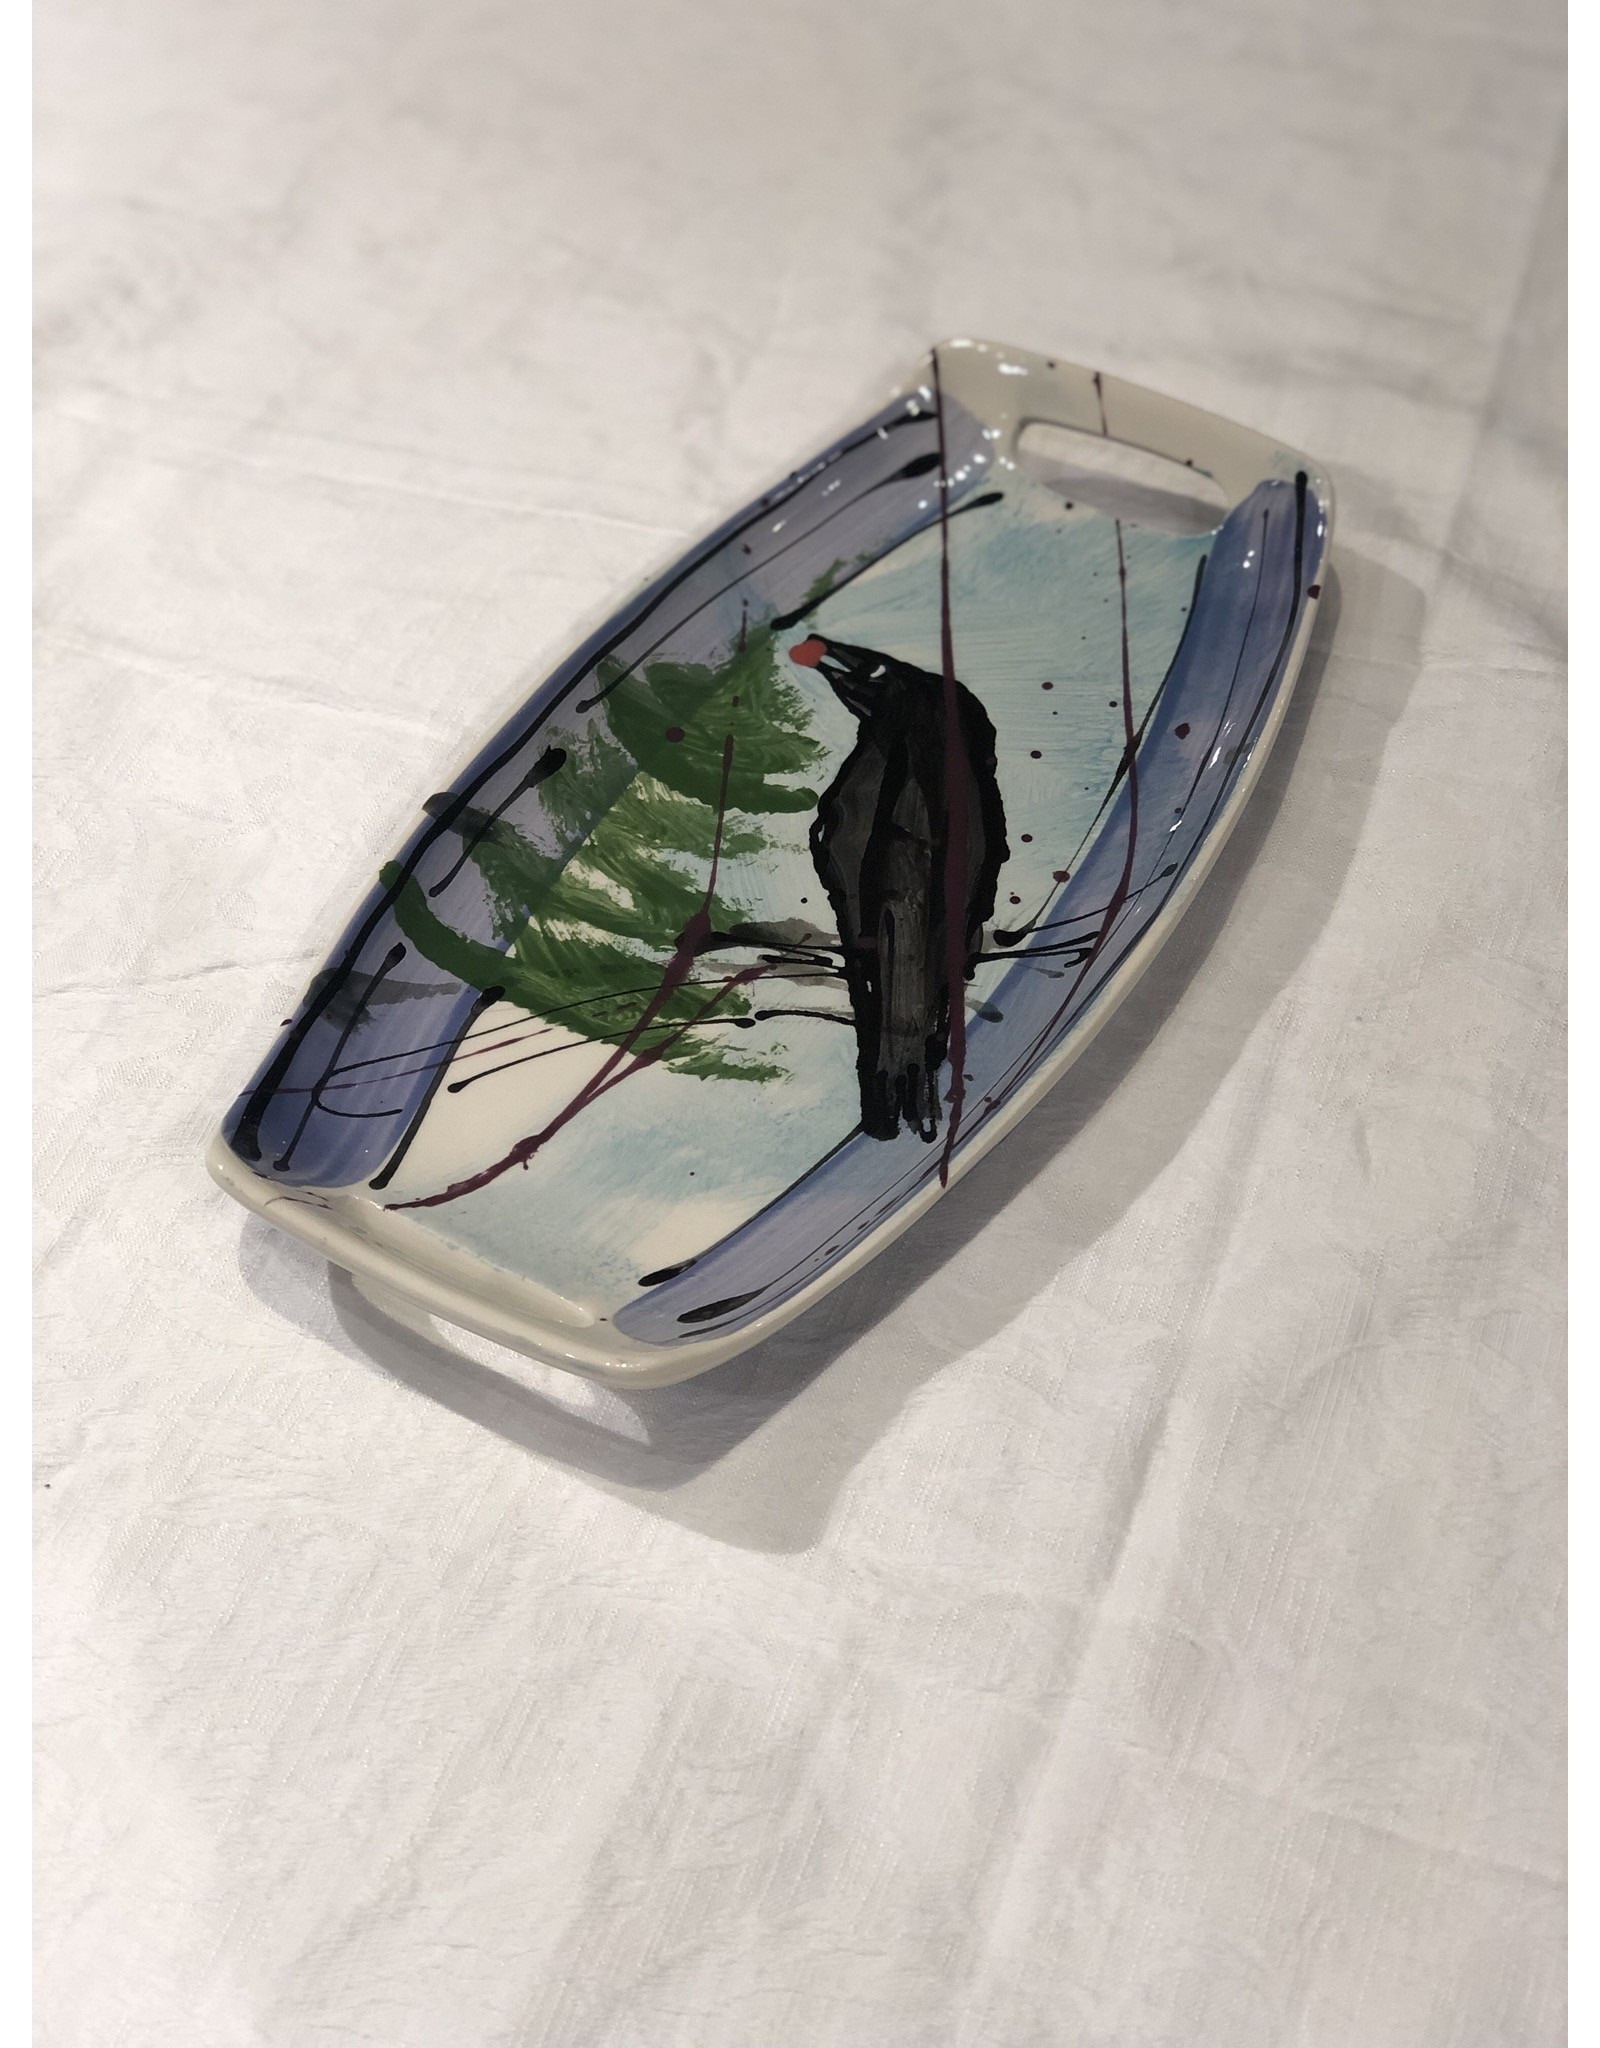 Donna Toohey Scoop Tray (Raven) | Donna Toohey